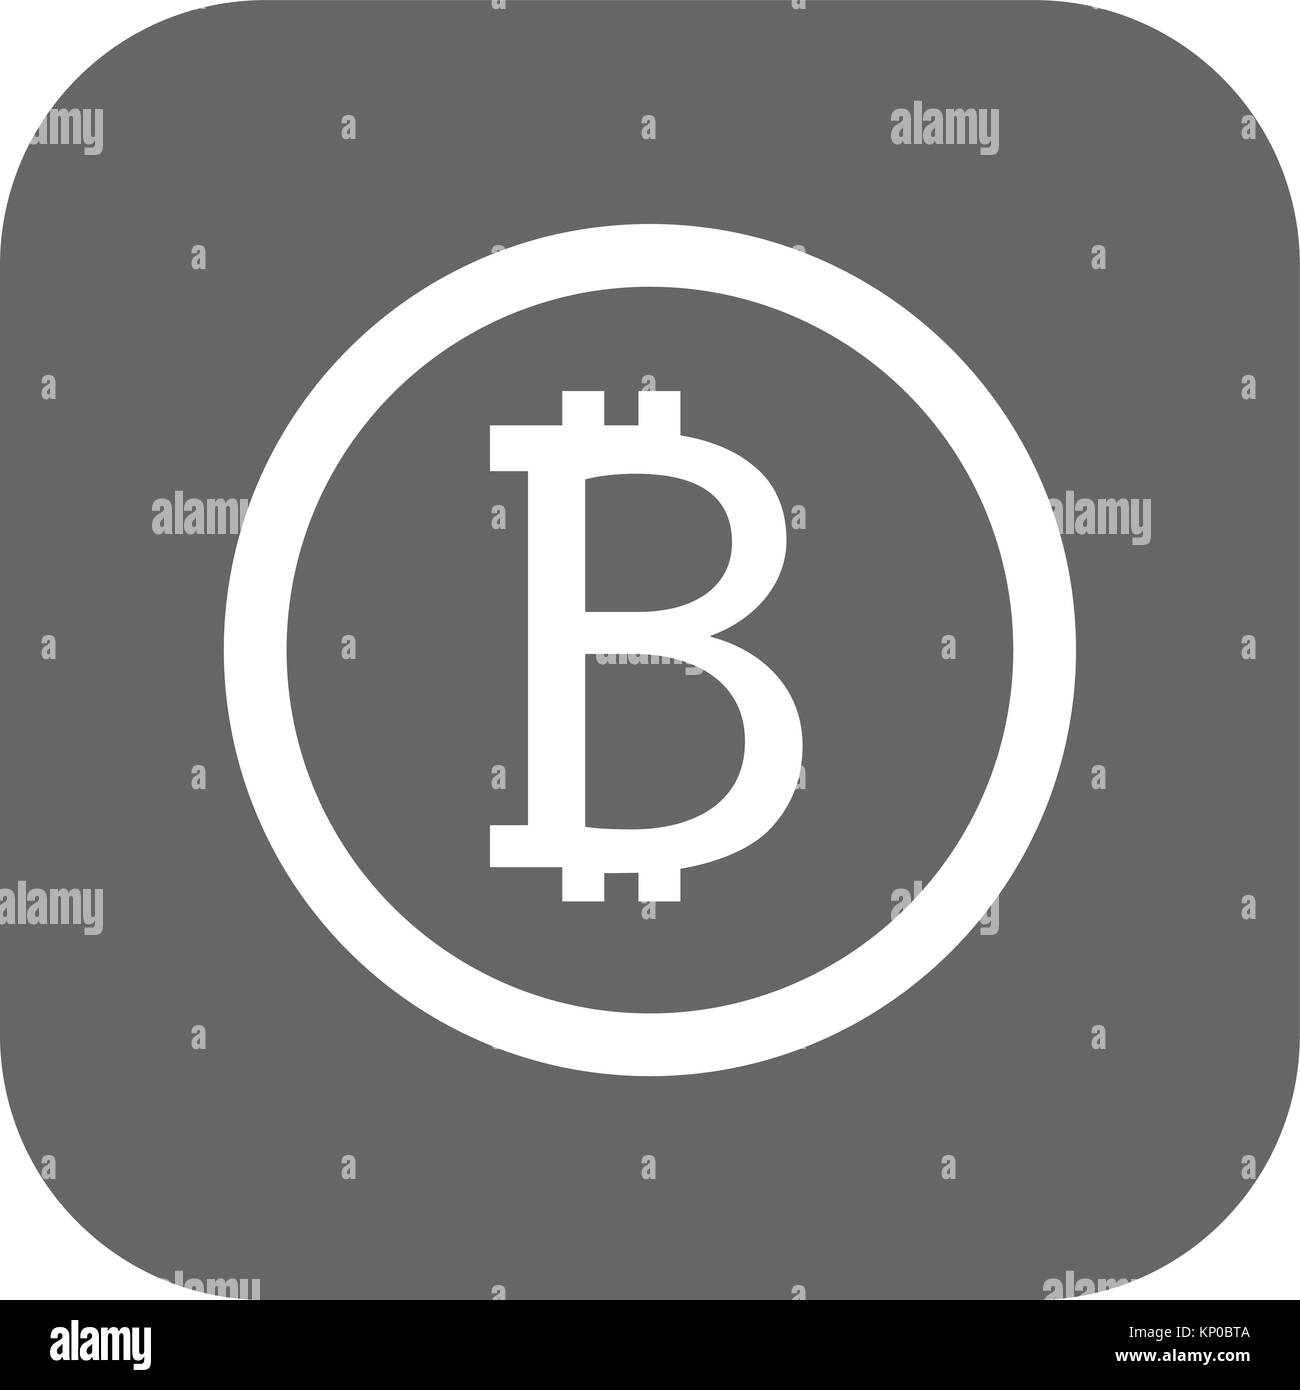 Bitcoin sign icon for internet money. Crypto currency symbol and coin image for using in web projects or mobile - Stock Image